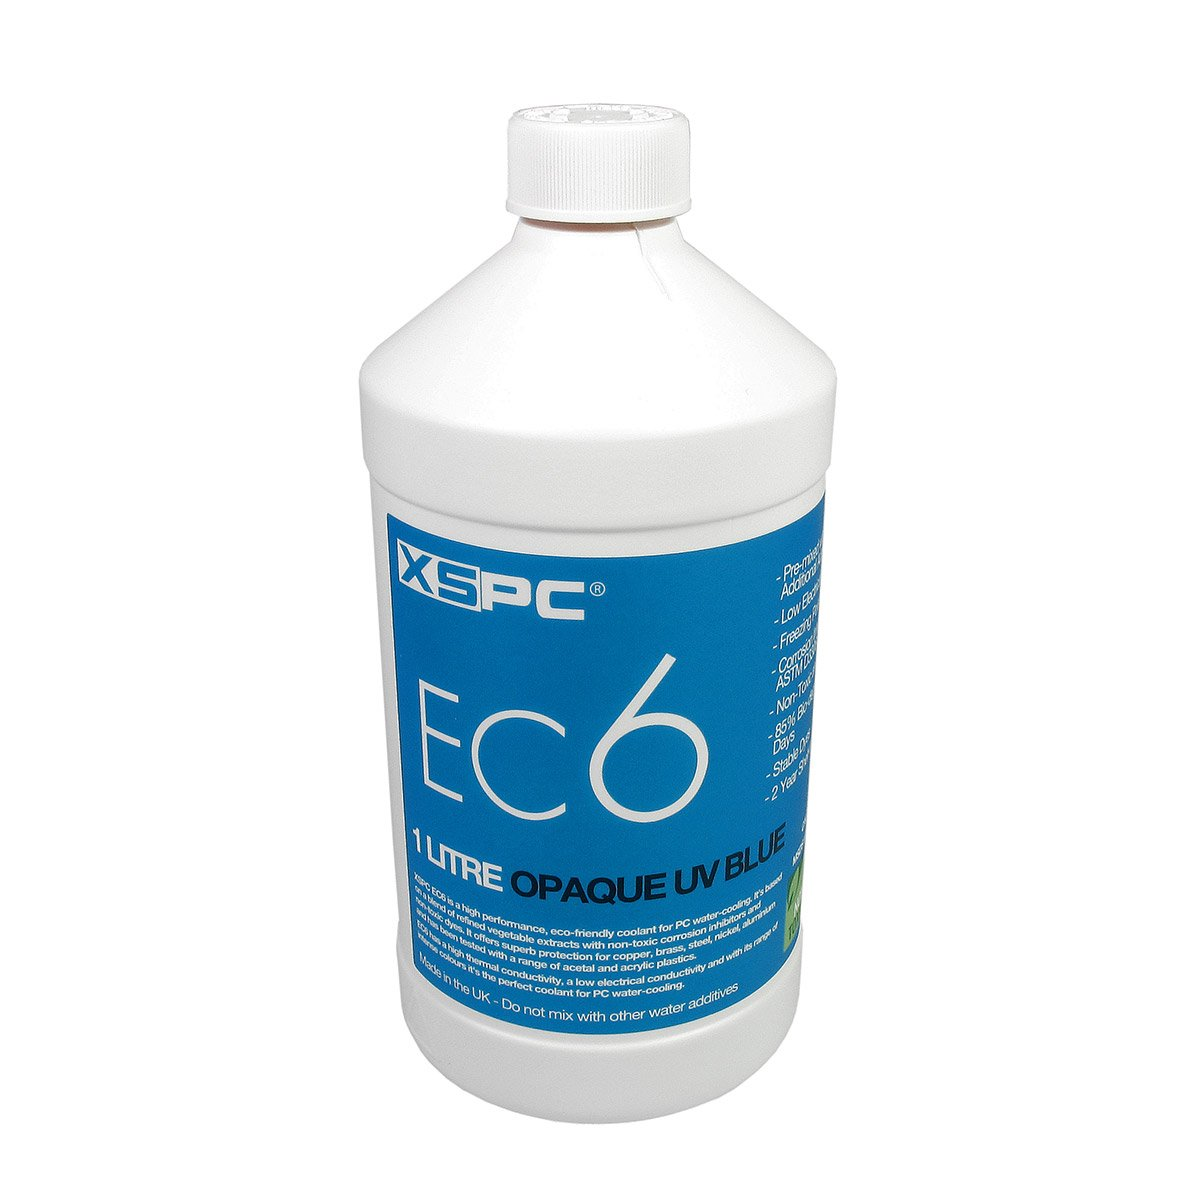 XSPC EC6 High Performance Premix Coolant, Opaque, 1000 mL, UV Blue